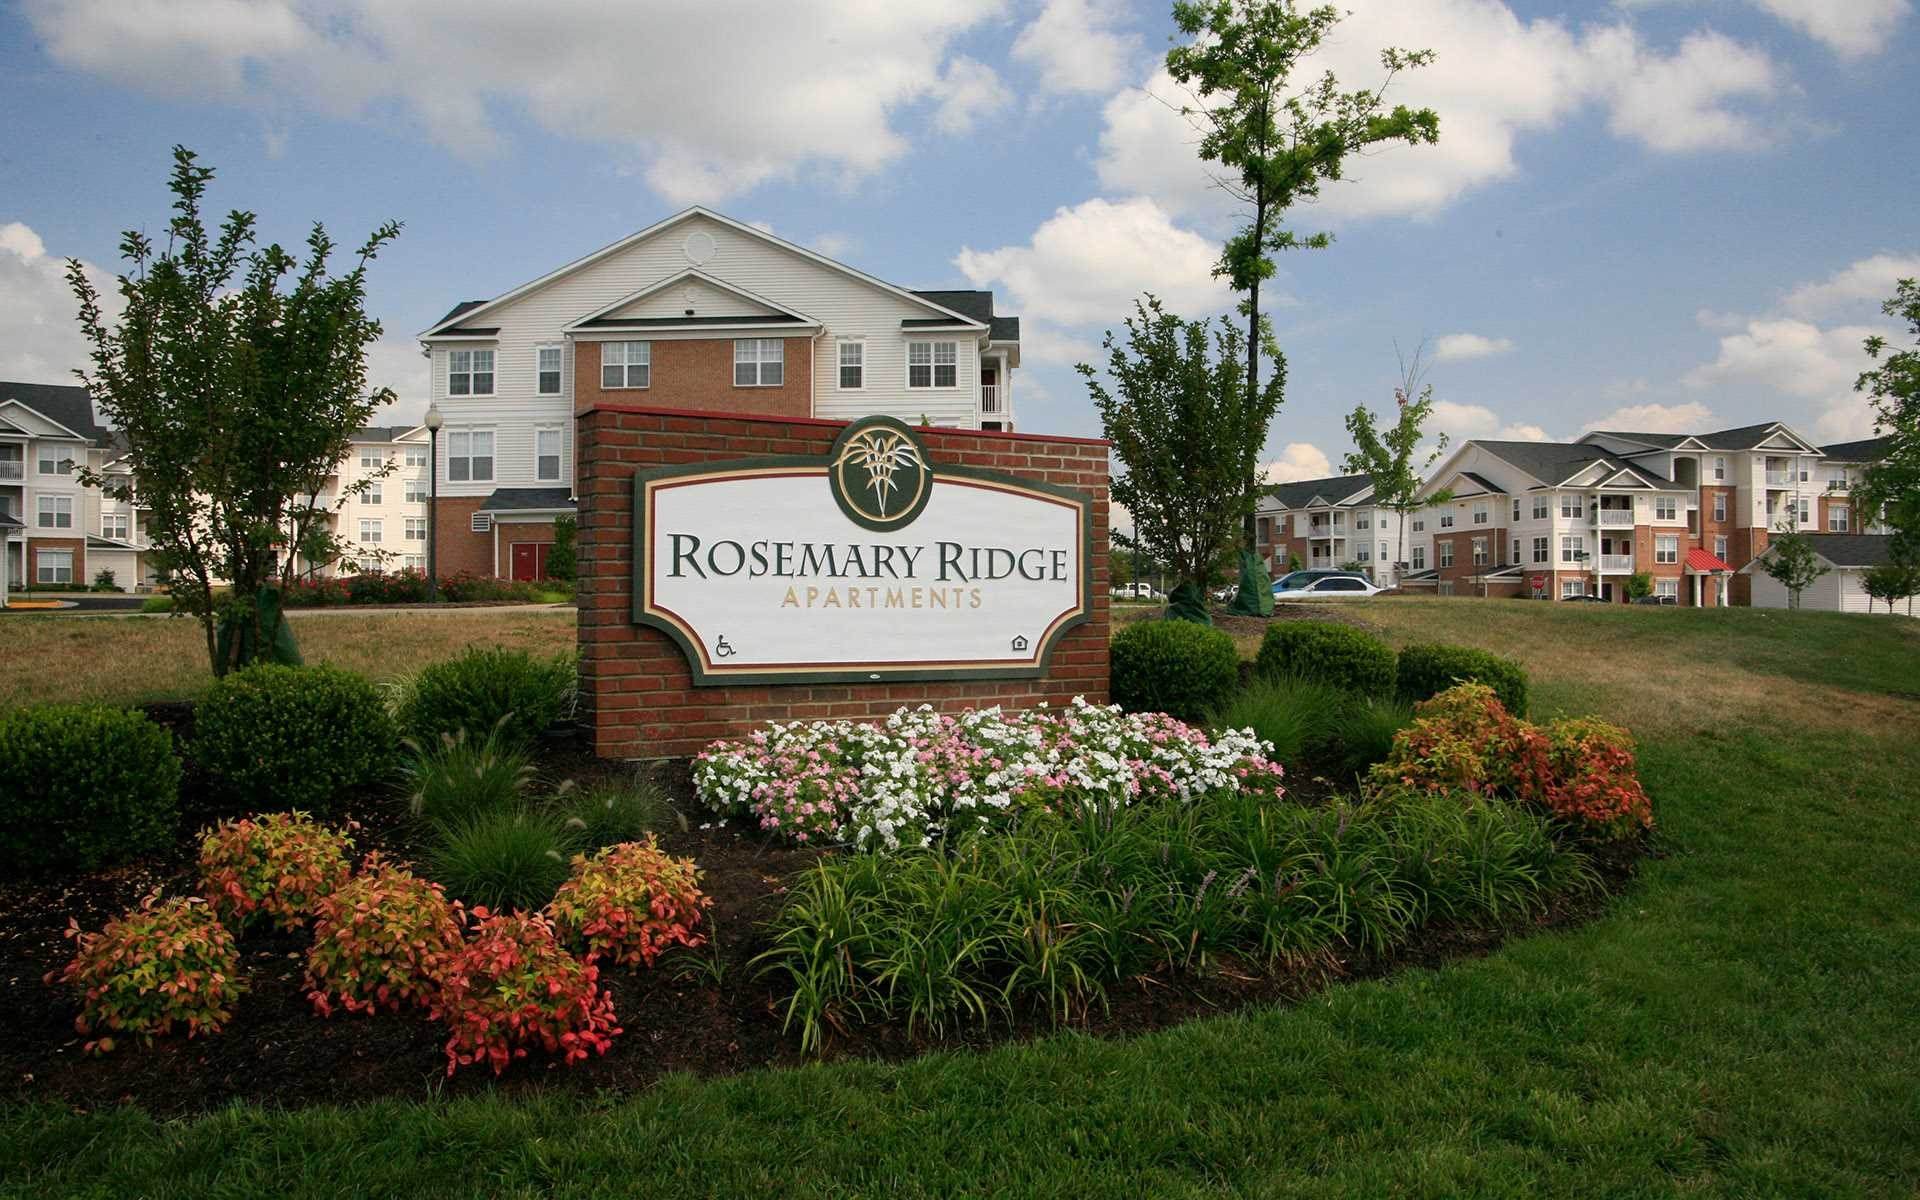 Rosemary Ridge background 1